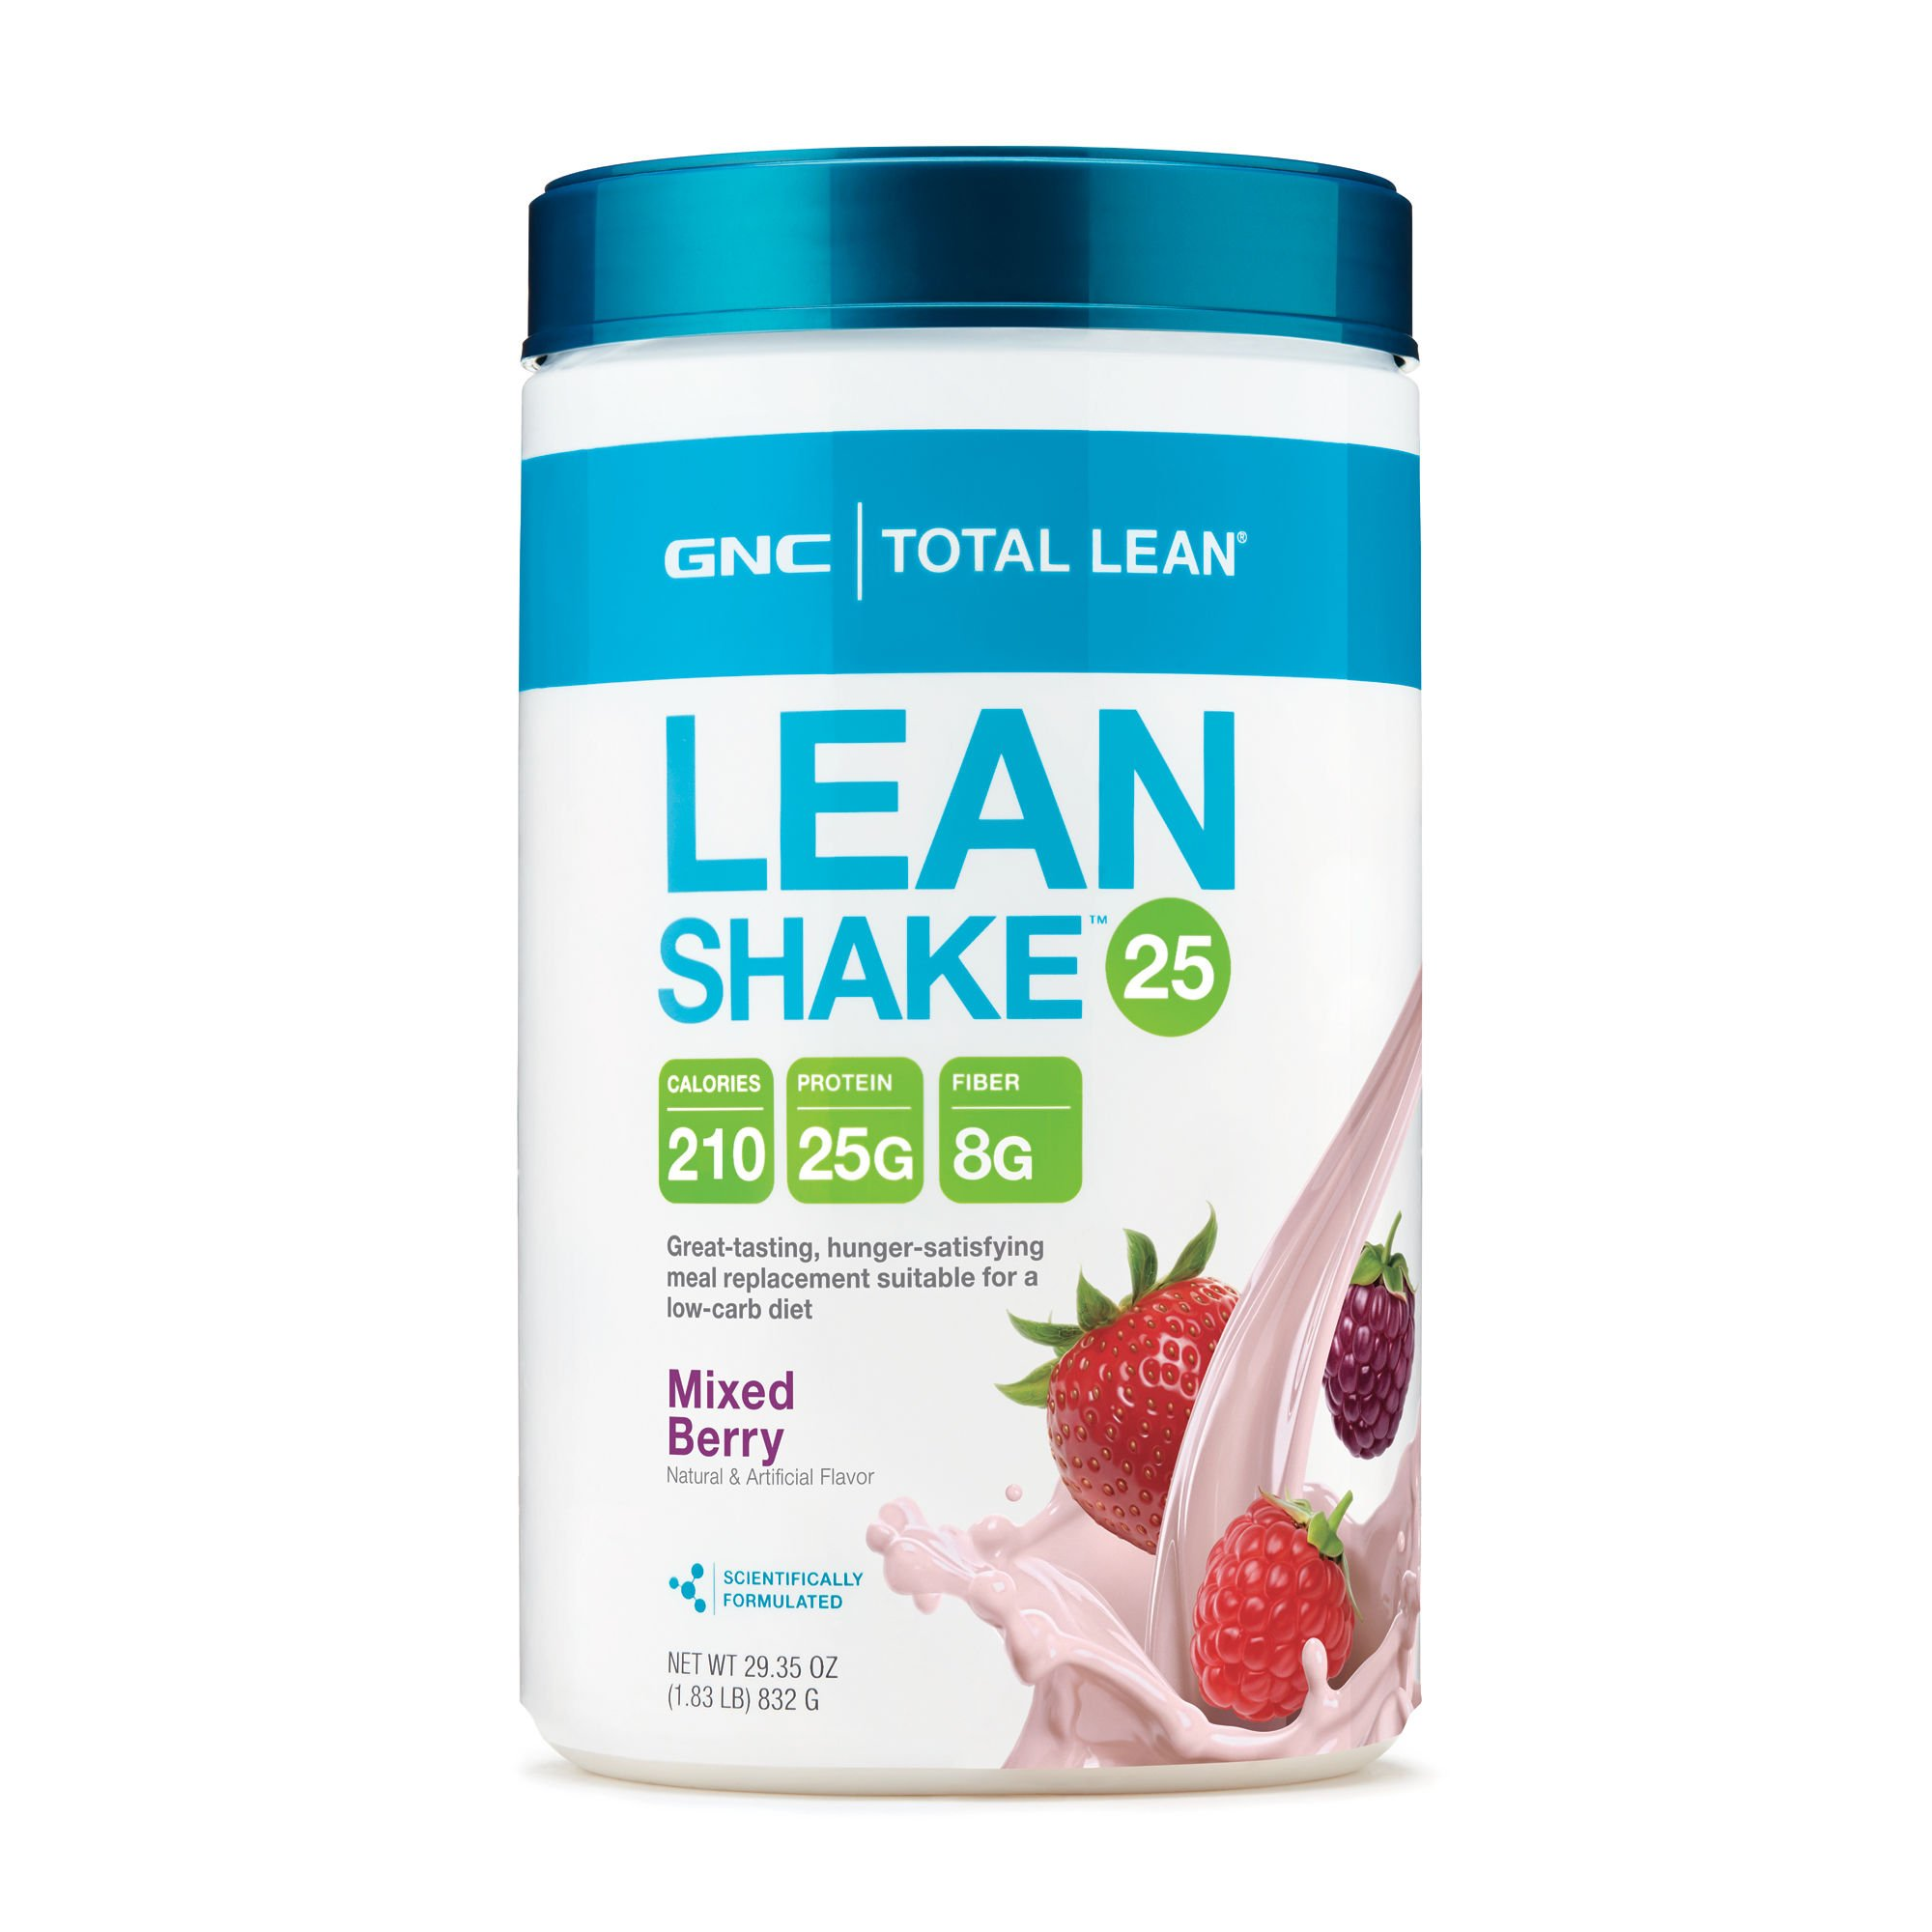 GNC Total Lean 25 Meal Replacement Shake for Weight Loss and Low-Carb Diets, Mixed Berry, 16 Servings, Protein Powder for Weight Management Support